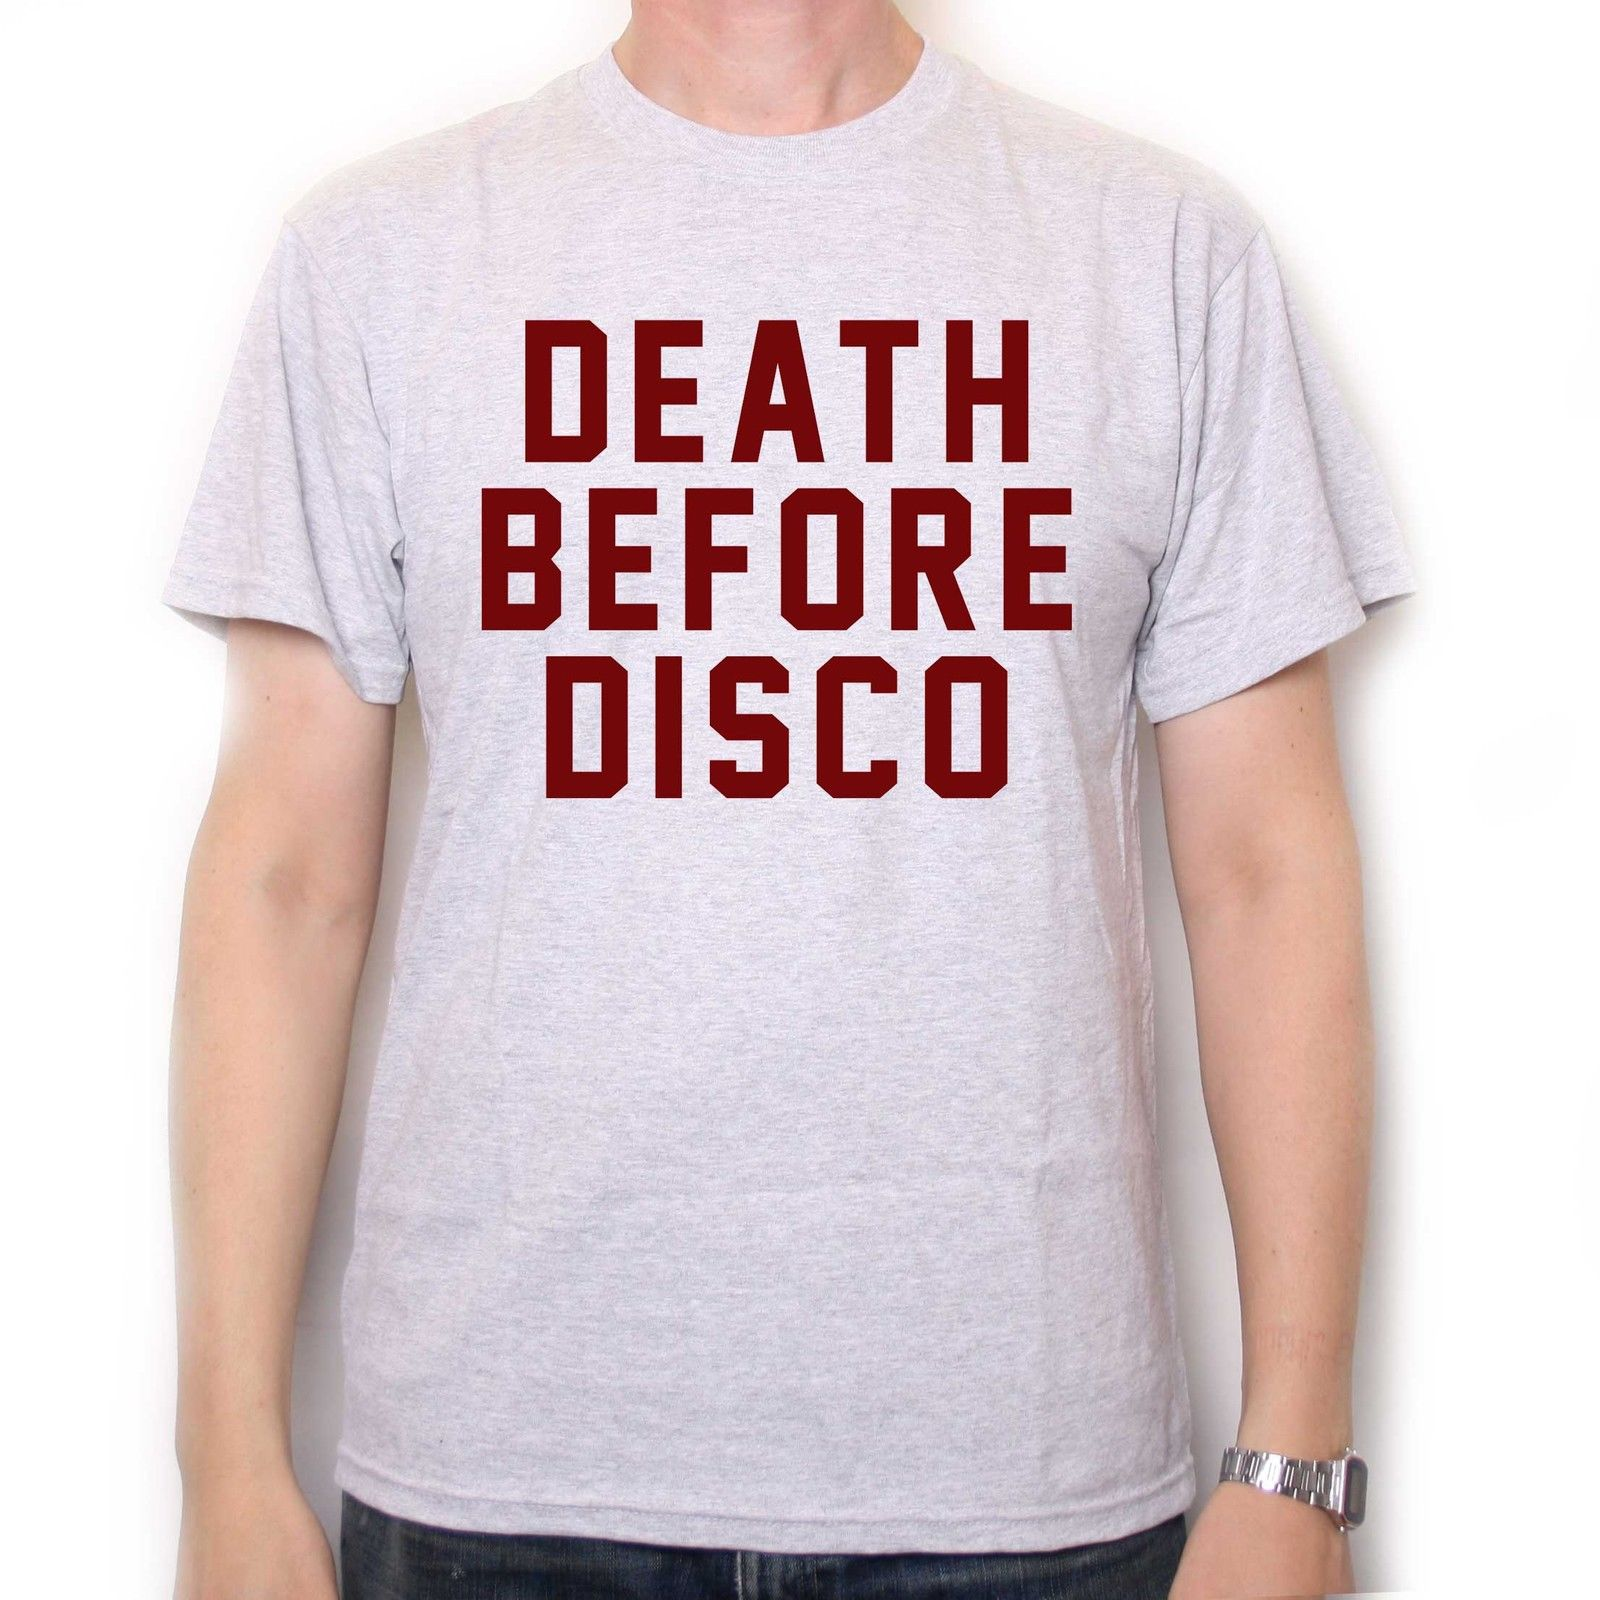 Death Before Disco T Shirt As Worn By Judge Reinhold In Stripes Cult Film Movie Comfortable t shirt,Casual Short Sleeve TEE